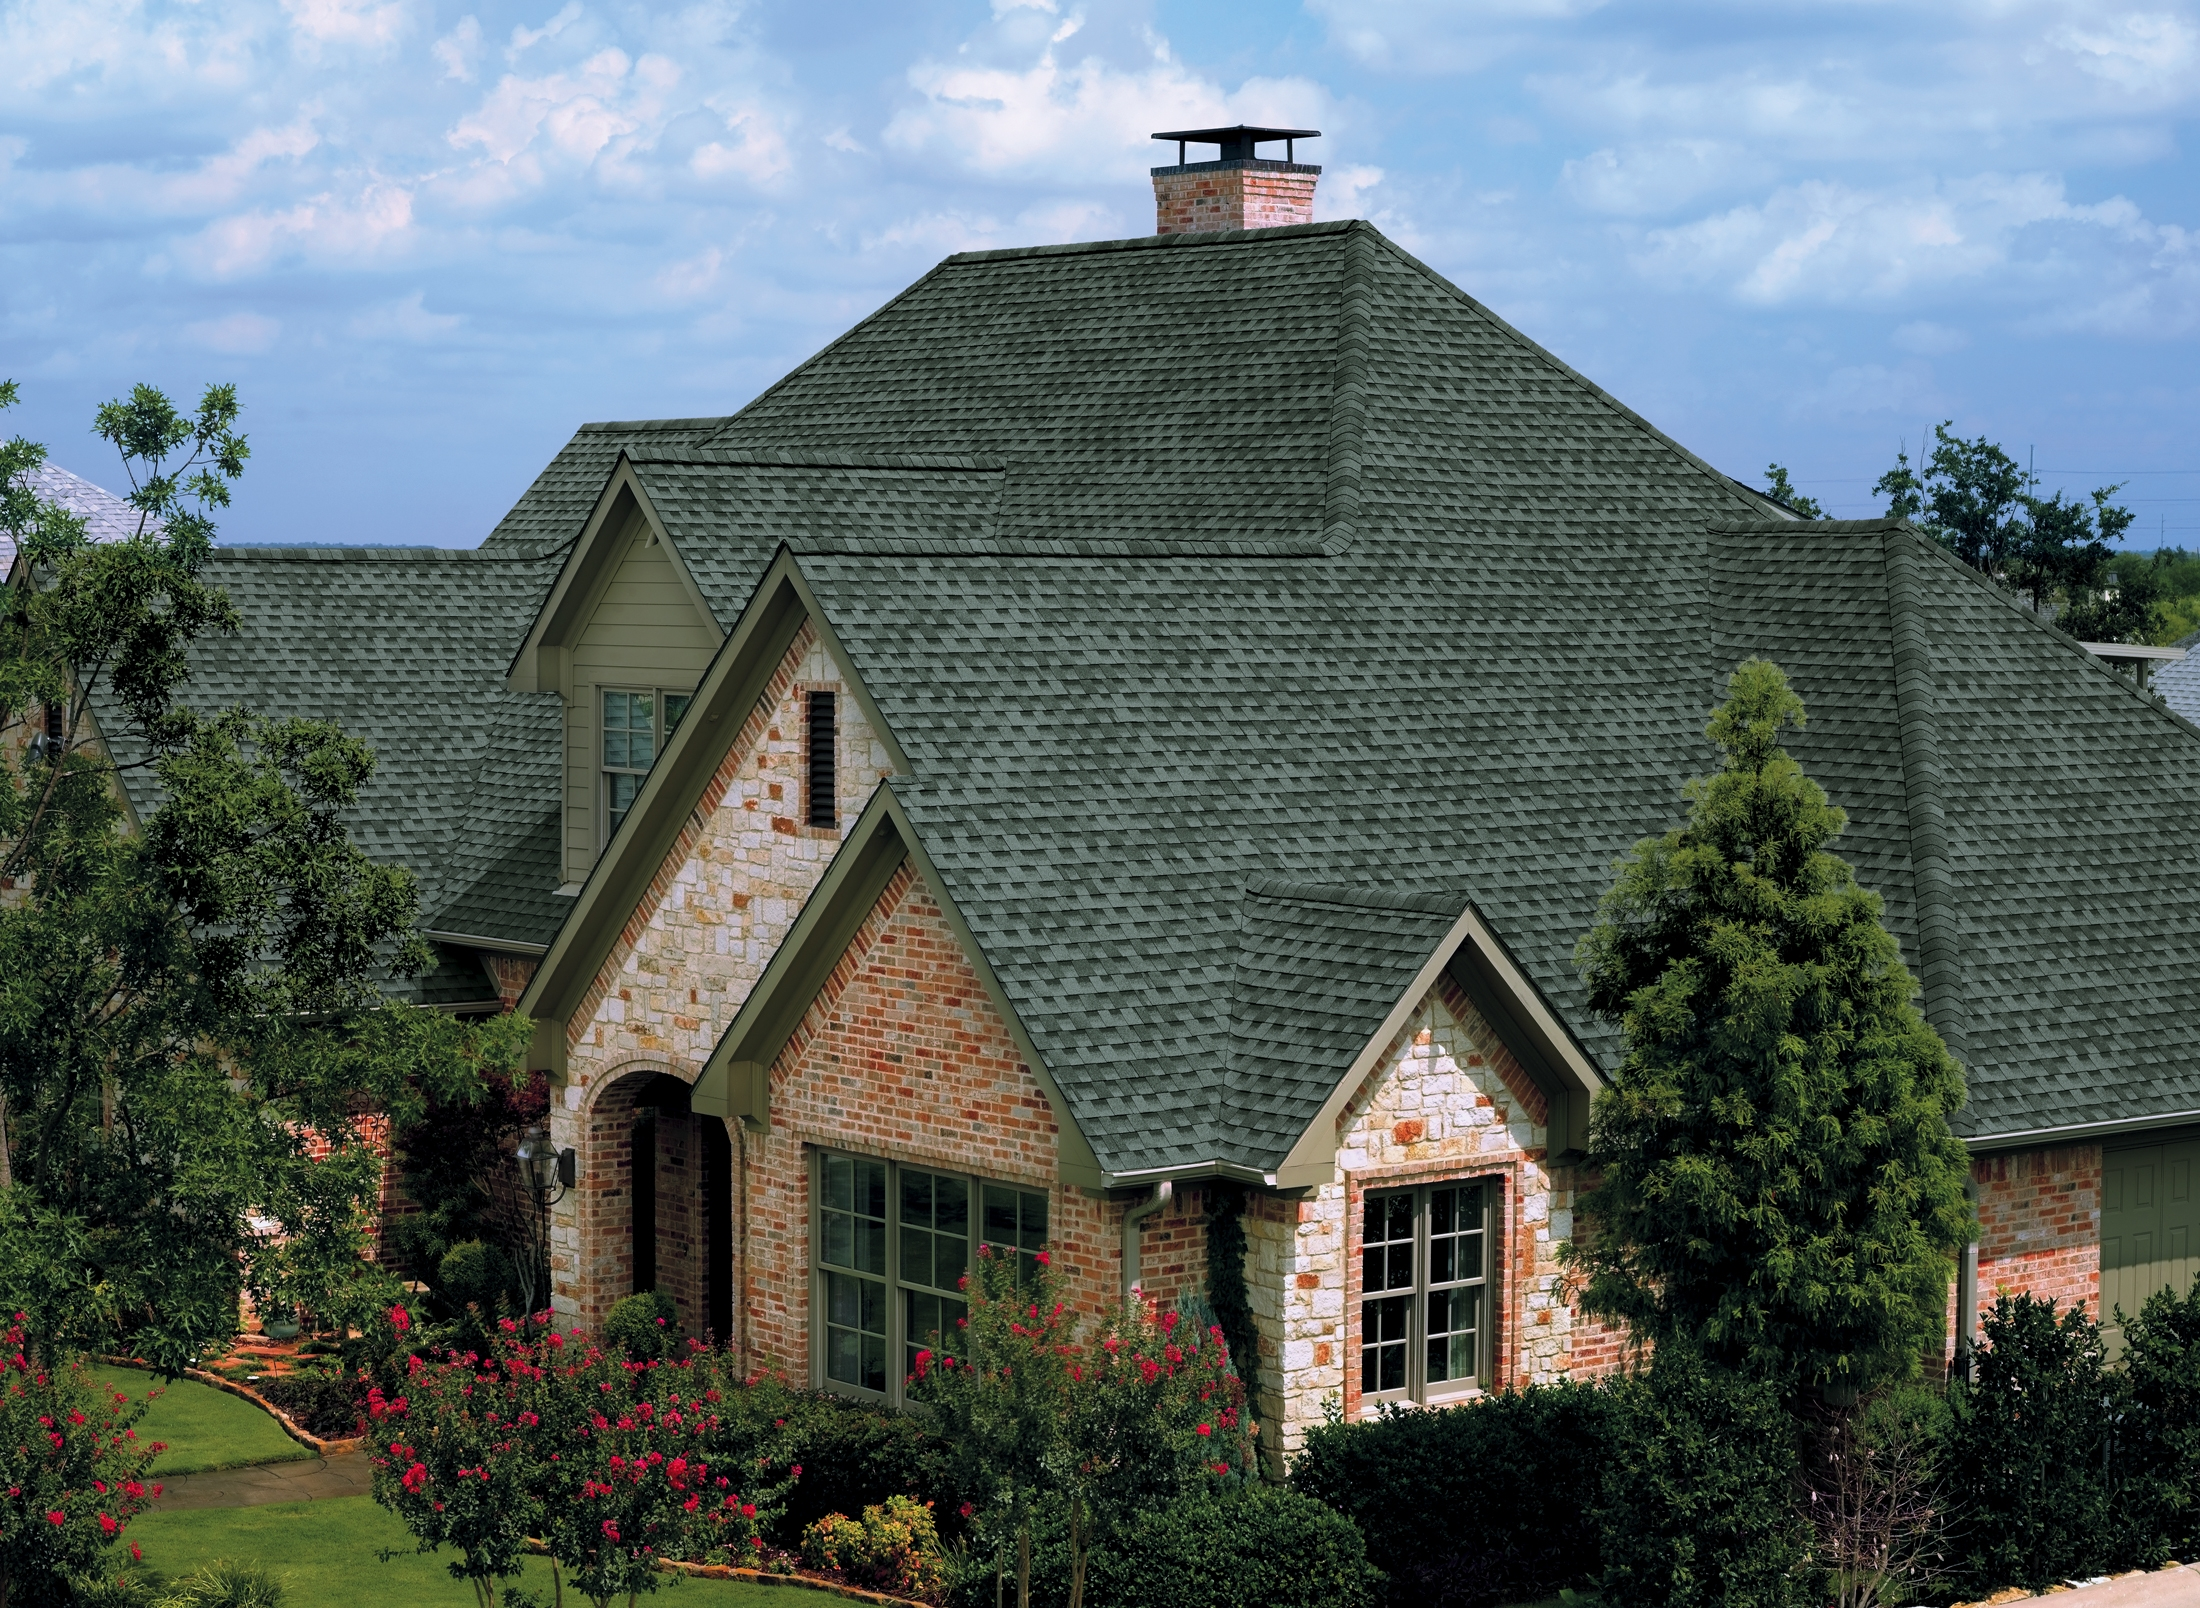 Chic Gaf Timberline Hd In Gray Matched With Brick Siding And Single Hung Windows For Home Exterior Design Ideas